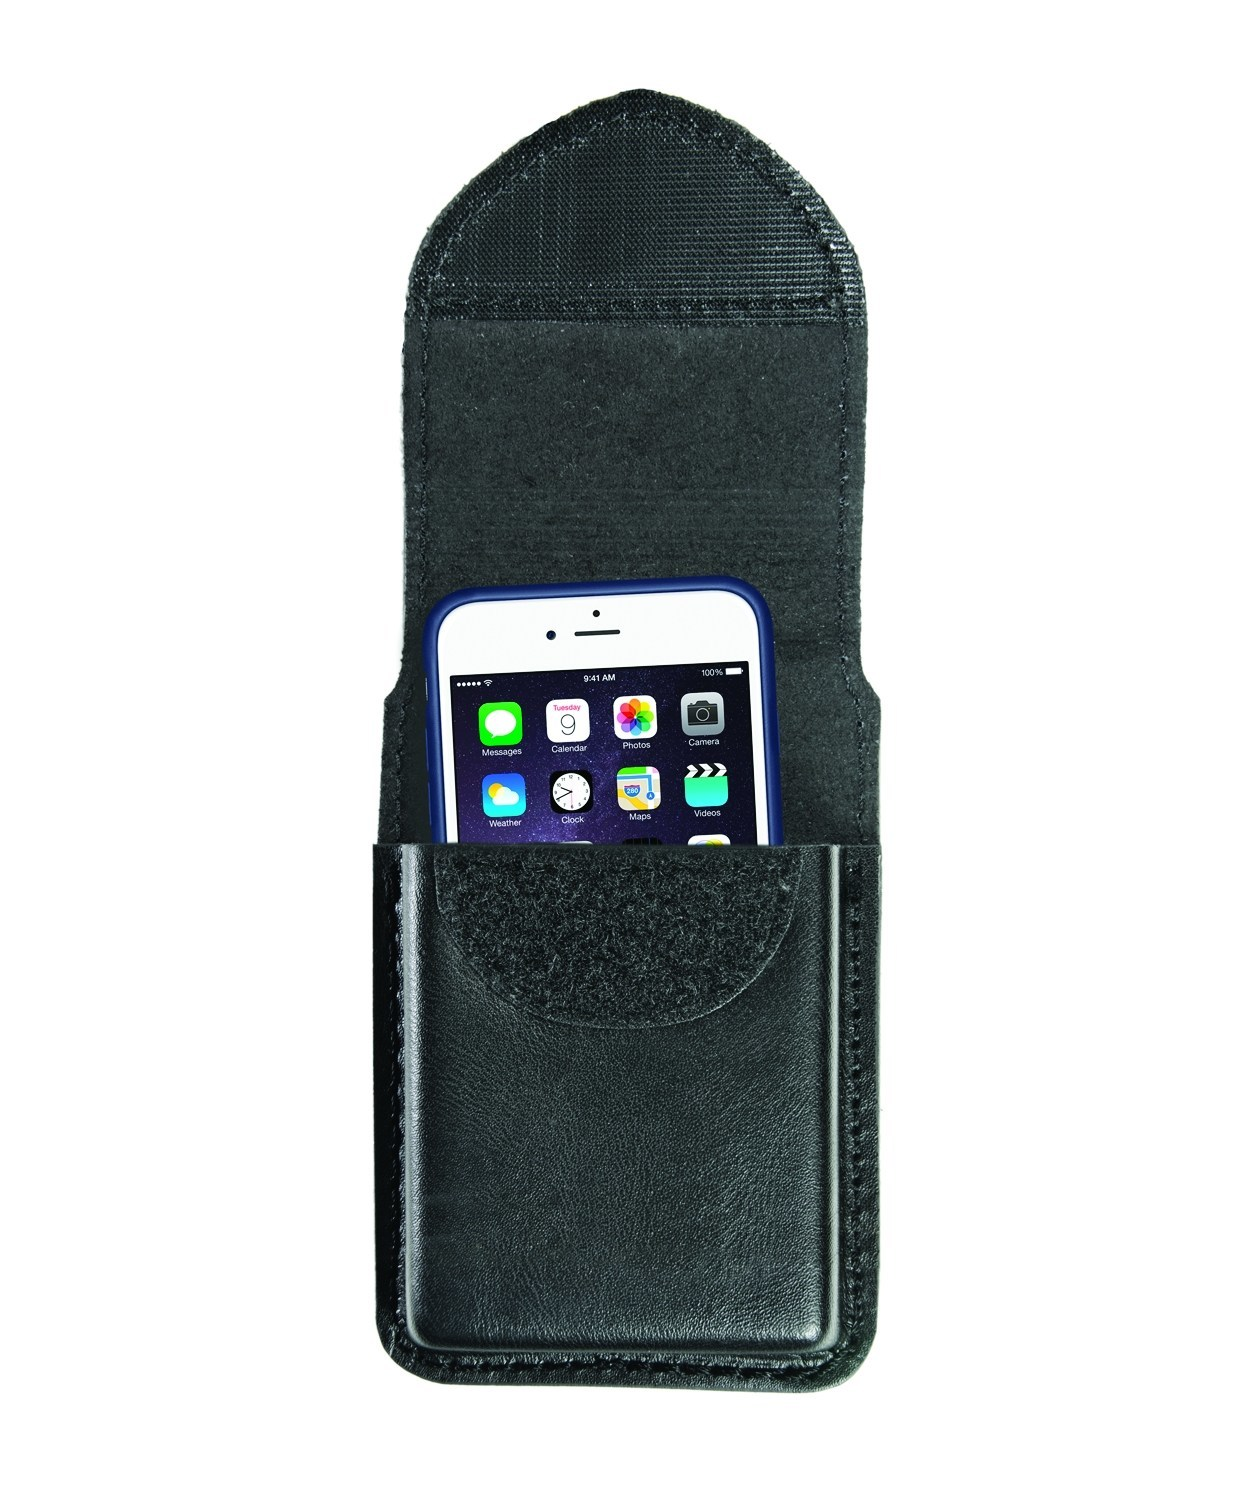 Smartphone Case, Size 'F', AirTek, Smooth